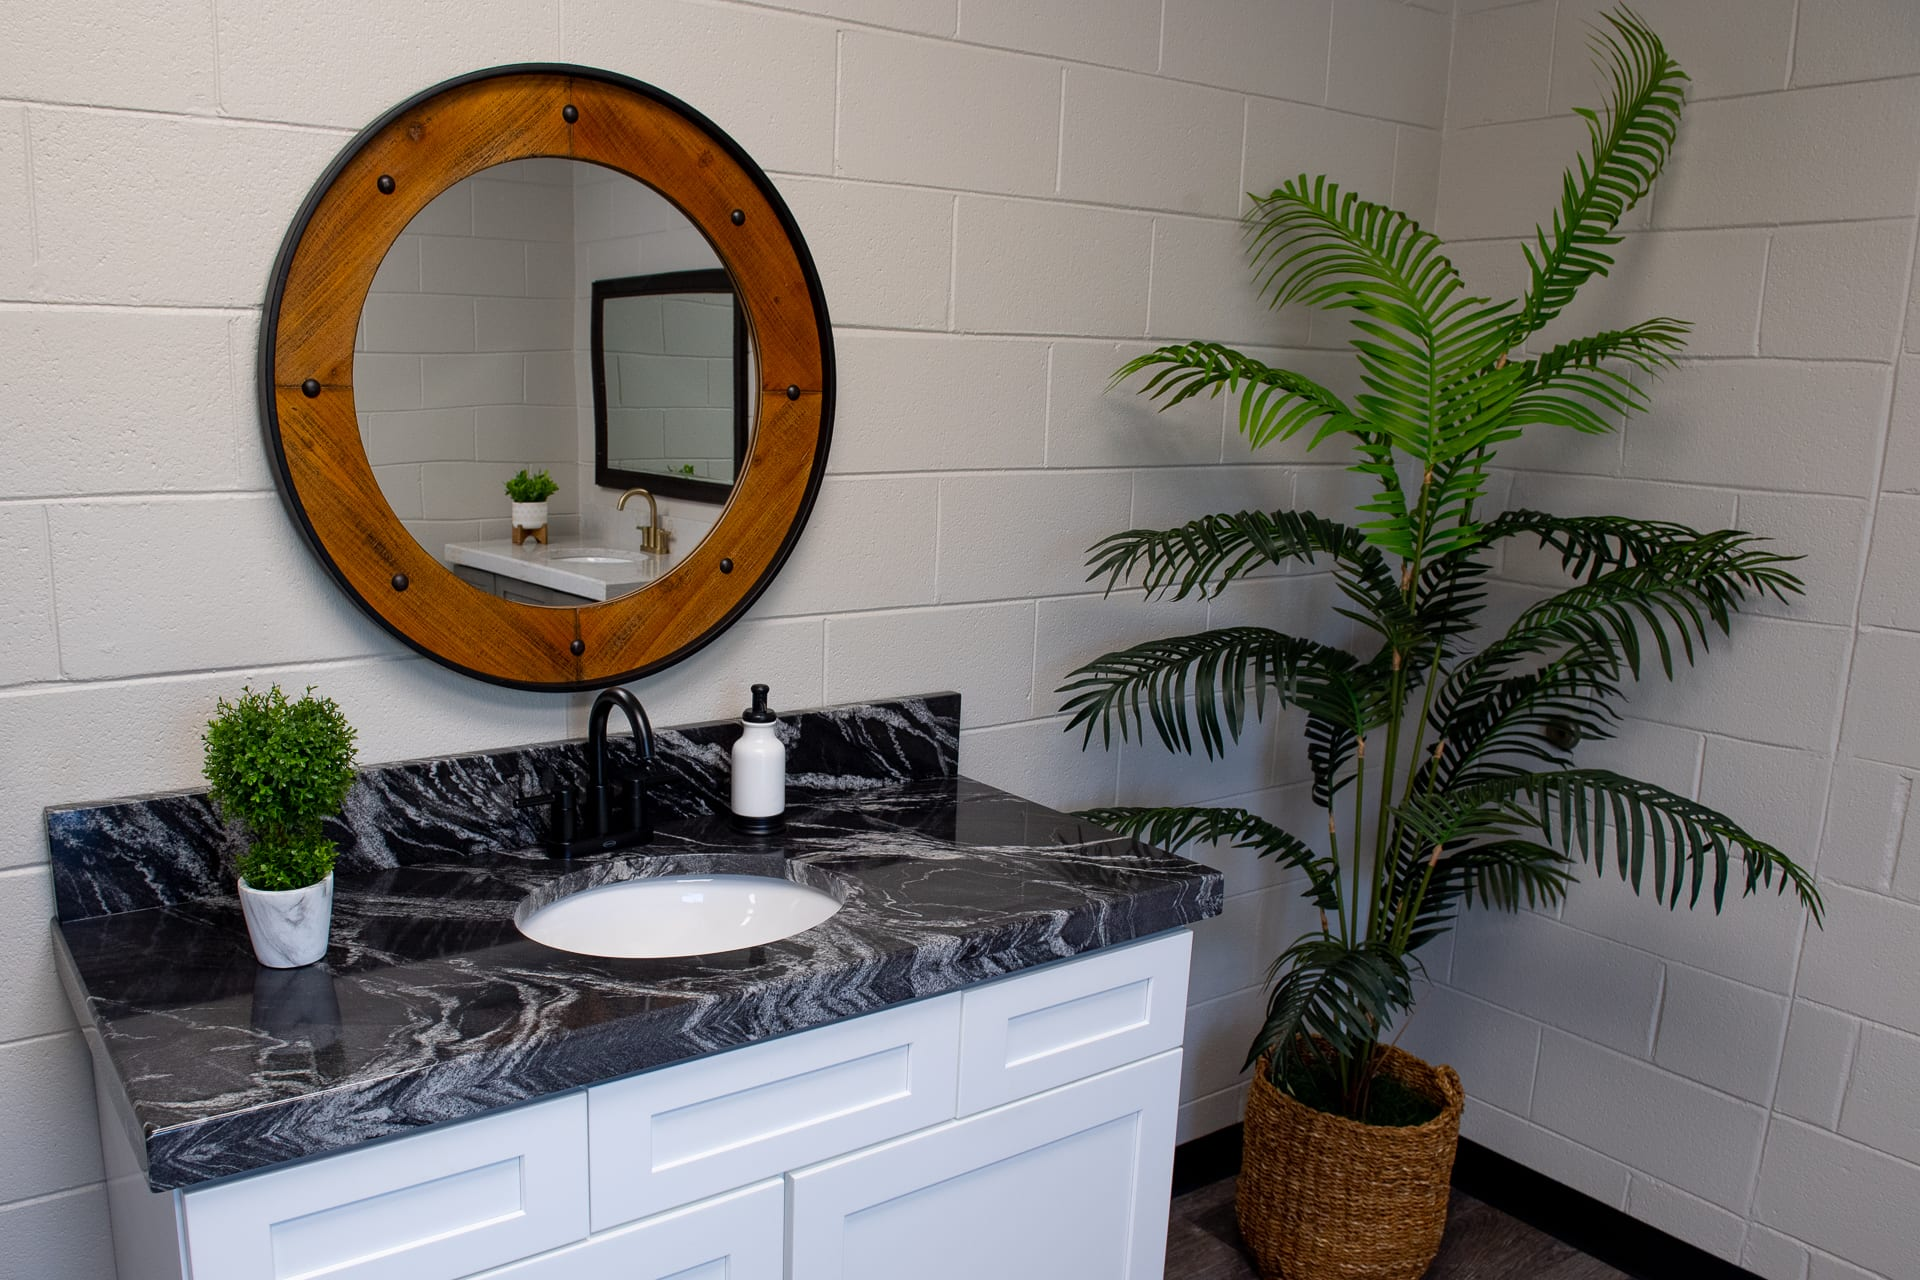 Bathroom Vanities by Magnolia Countertops, Countertop Fabrication, Countertop Replacement and Repair in Cookeville and Crossville TN.